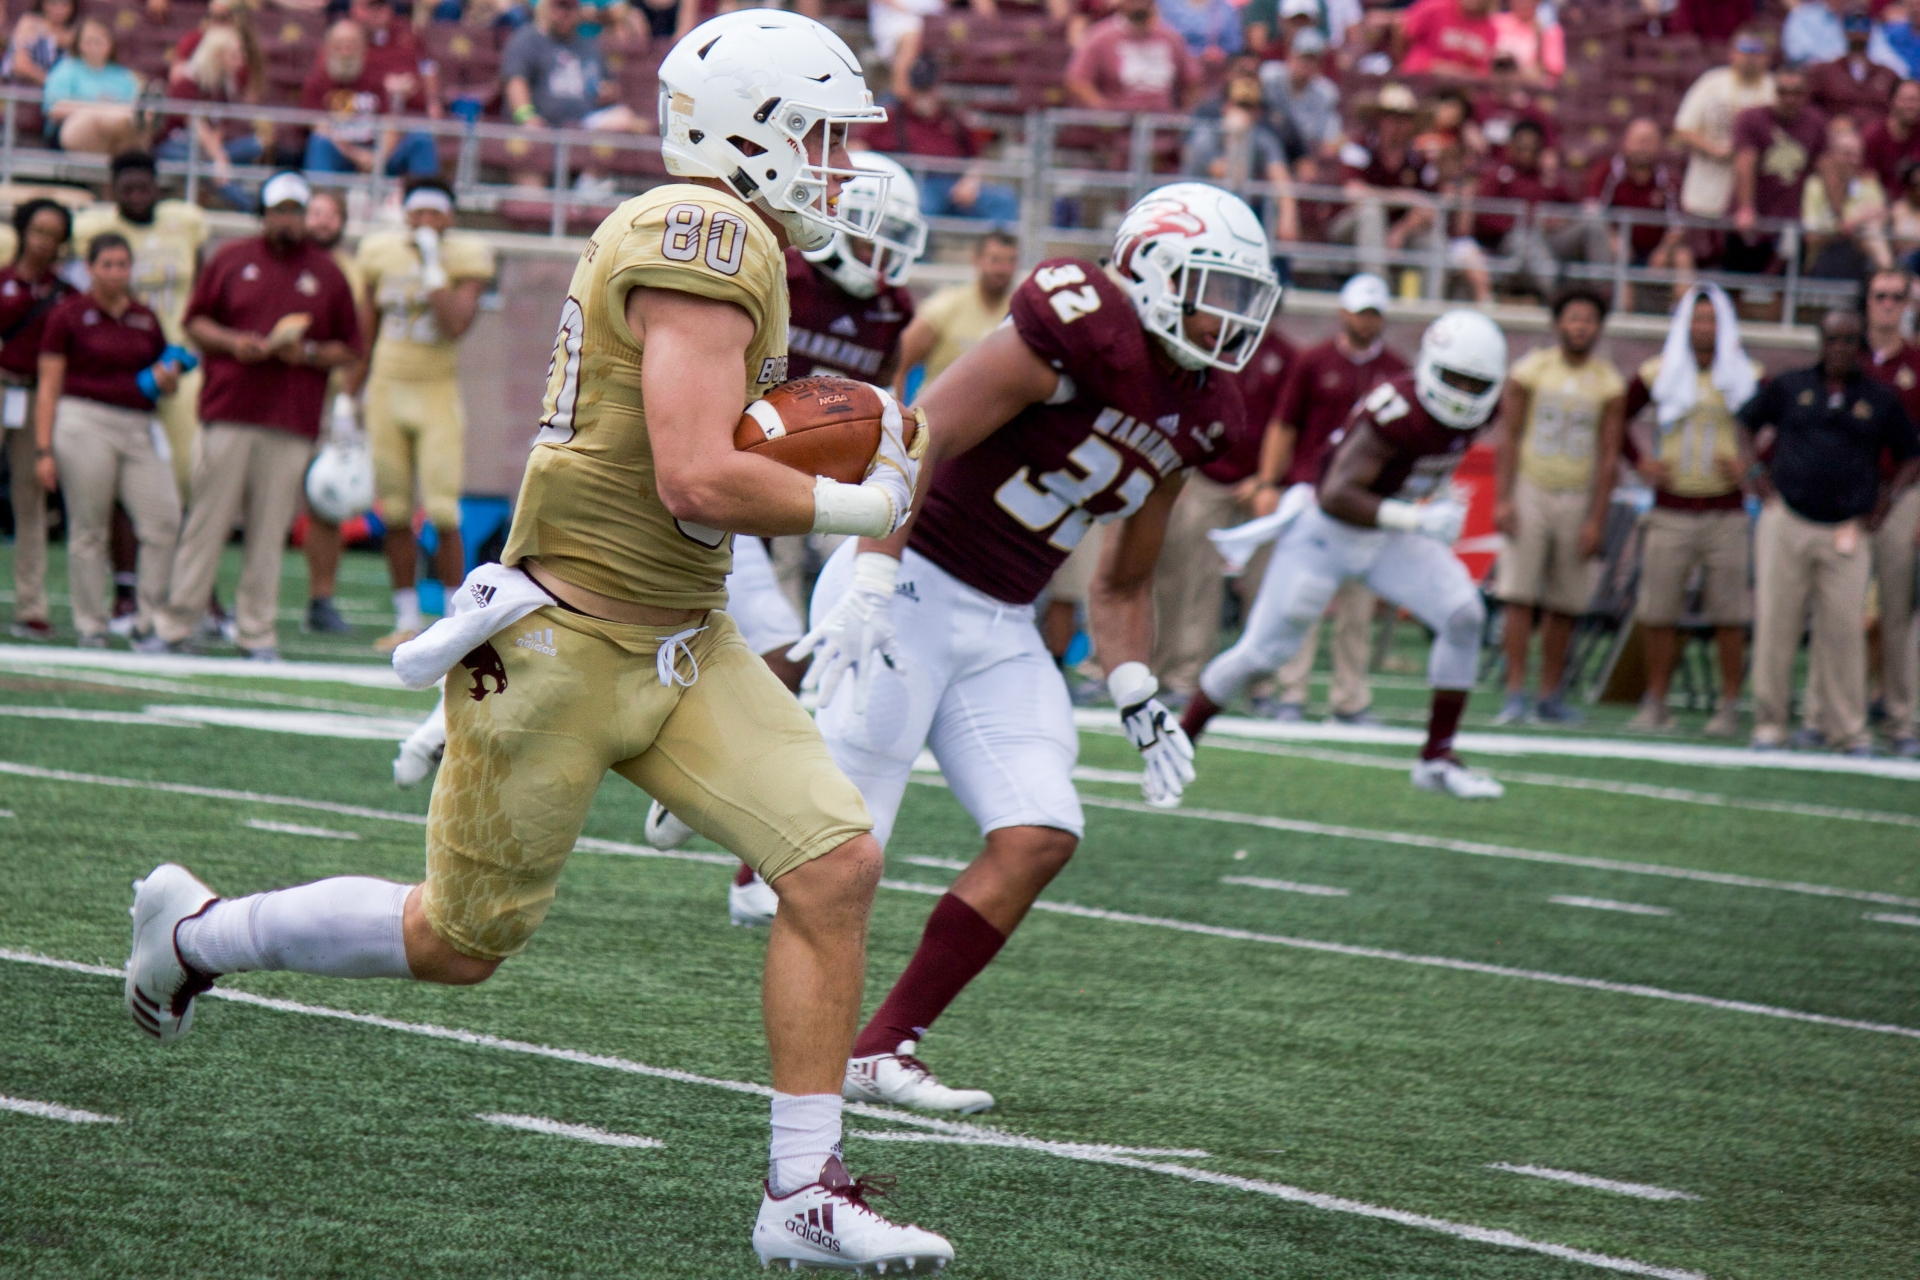 After hauling in a pass, wide receiver number 80 Hutch White strides downfield in the Bobcats' golden uniforms as number 32 of ULM, in a dark black jersey, begins to chase him. The offensive identity was a major portion of coach Withers' dialogue on Monday. Wide receiver Hutch White has shown the ability to be a major part of the positive, passing plays coach is looking for